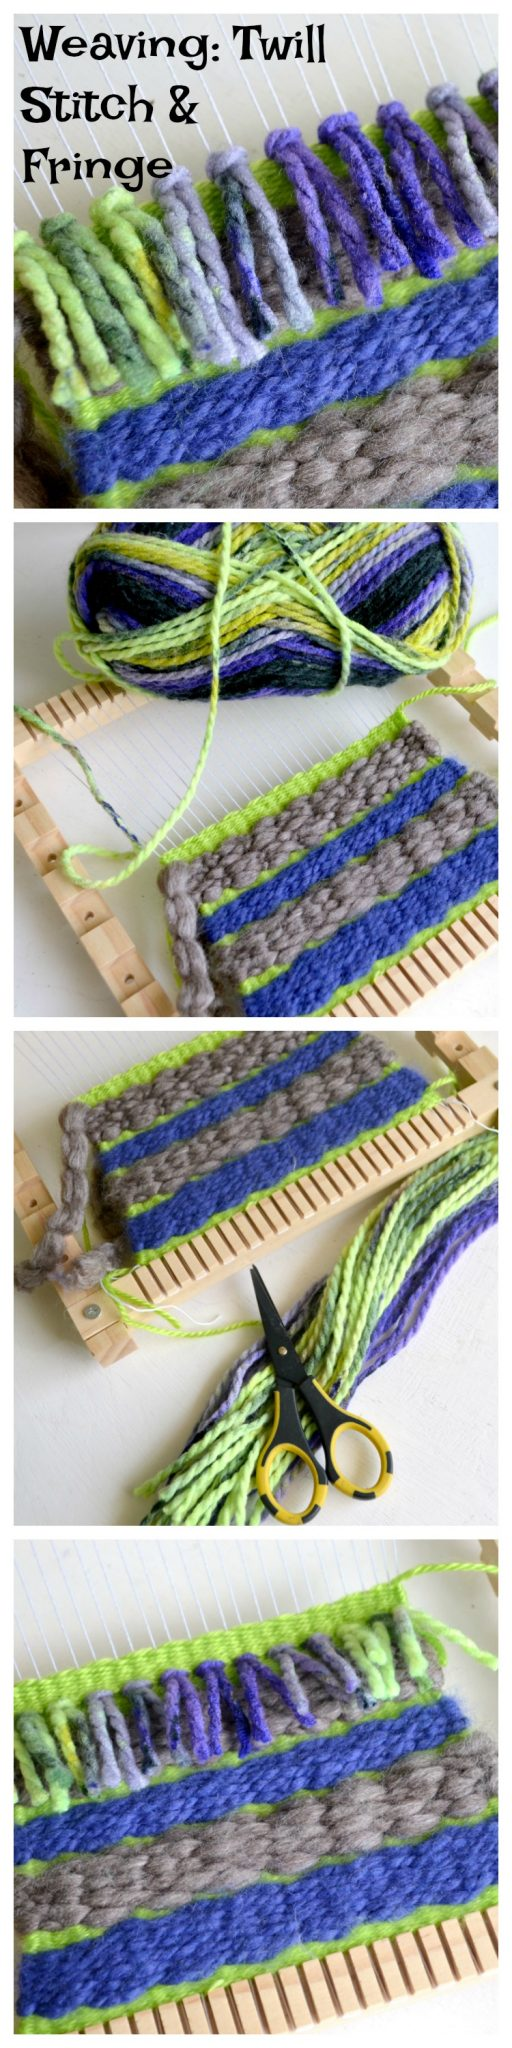 Weaving: Twill Stitch and Fringe